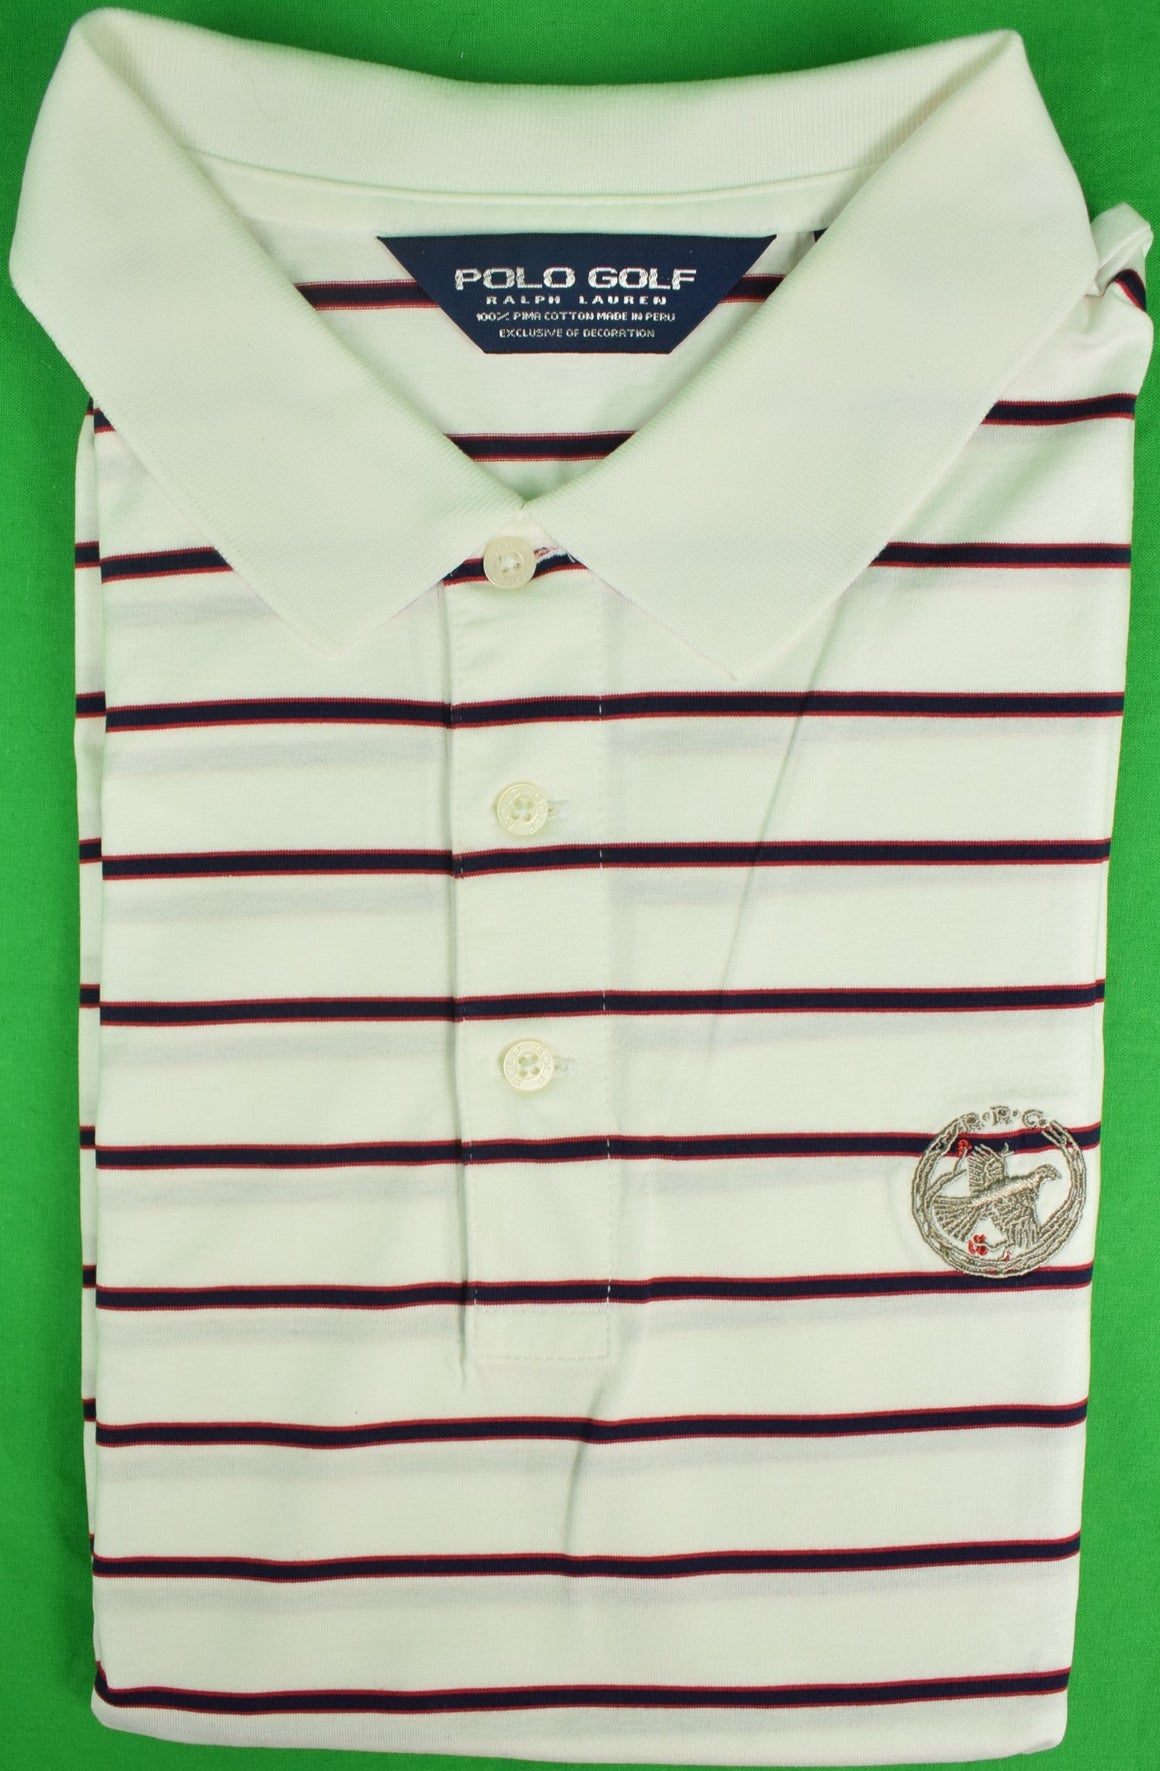 Ralph Lauren Polo Golf White/ Navy Stripe Shirt Sz: XXL w/ Rolling Rock Club Logo